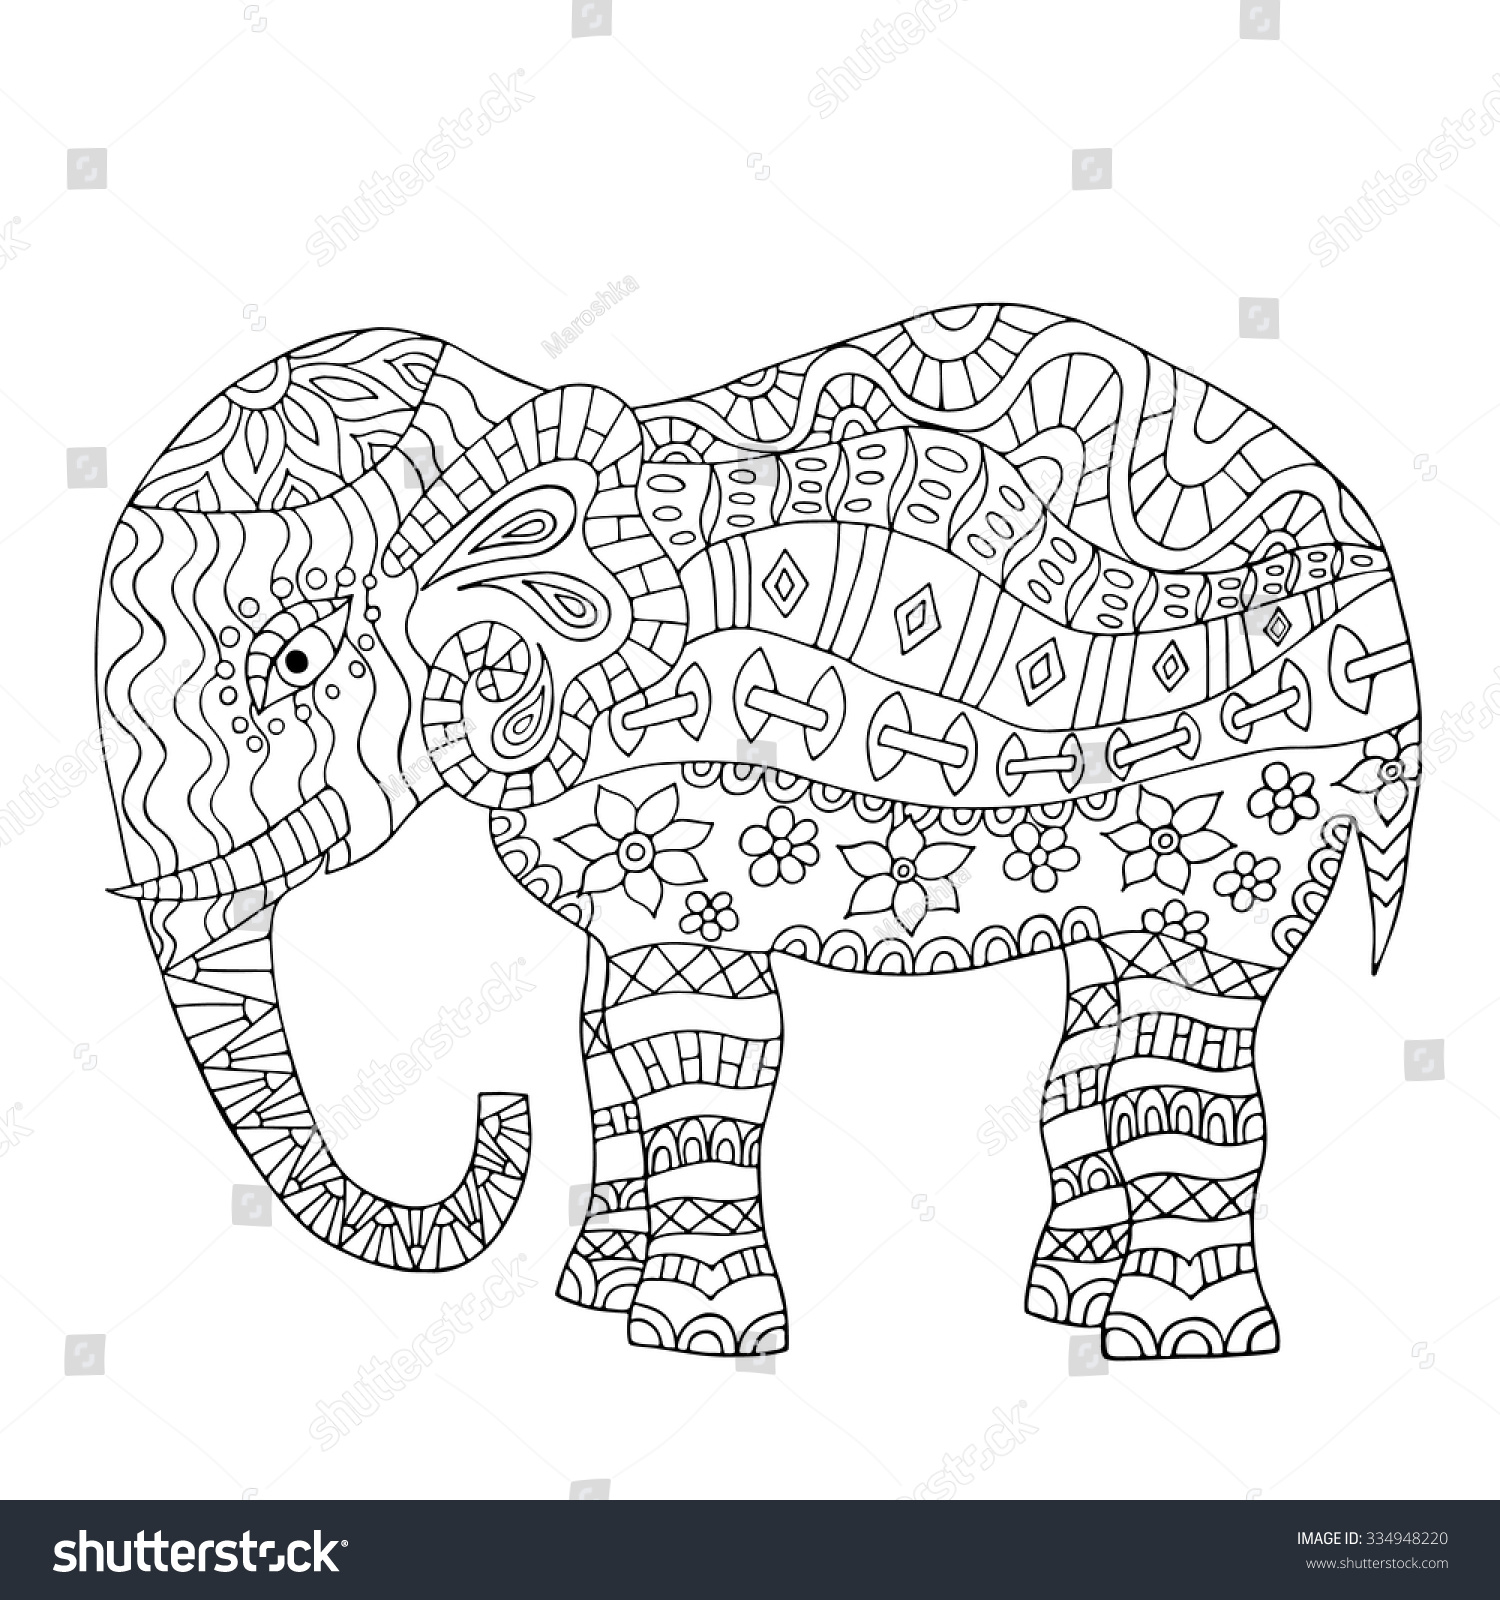 hand drawn elephant coloring page coloring book page for adults joy to order children - Coloring Pages Indian Elephants